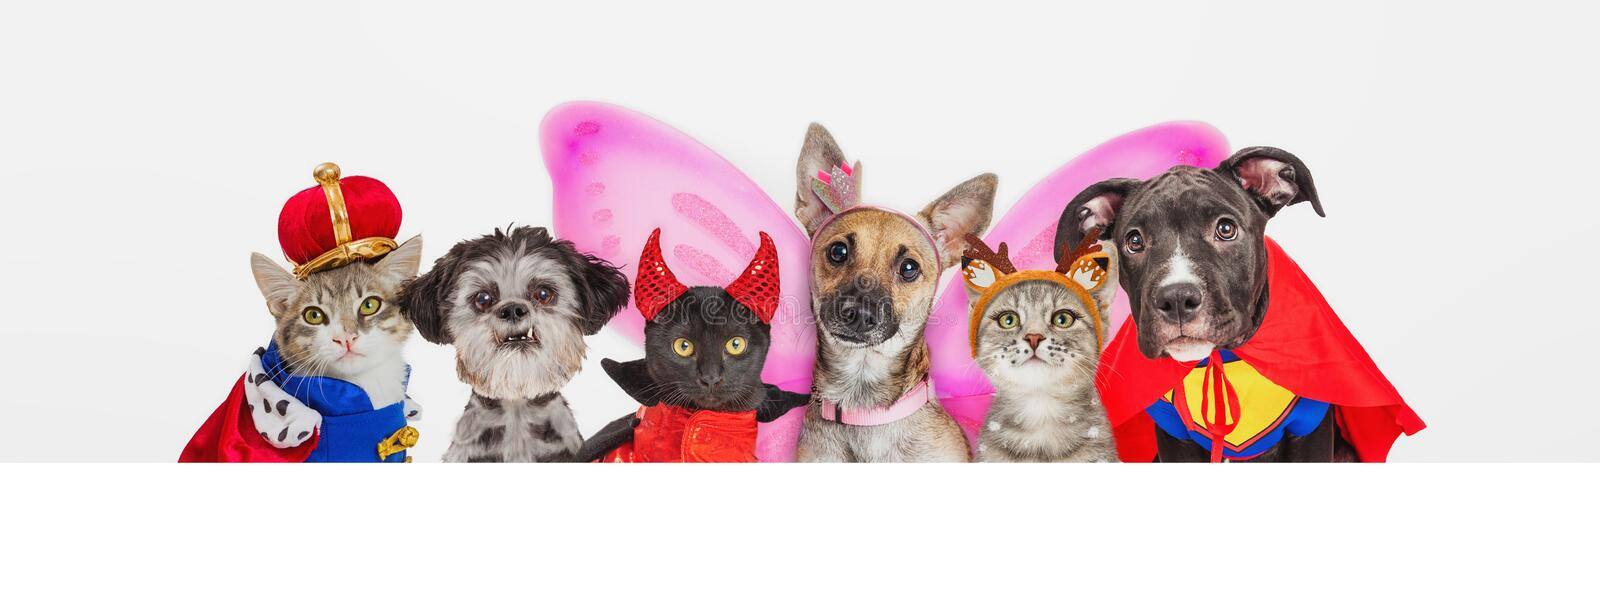 Cute Pets in Halloween Costumes Over Web Banner. Group of cute dogs and cats wearing Halloween costumes in a row over blank white horizontal web banner royalty free stock images